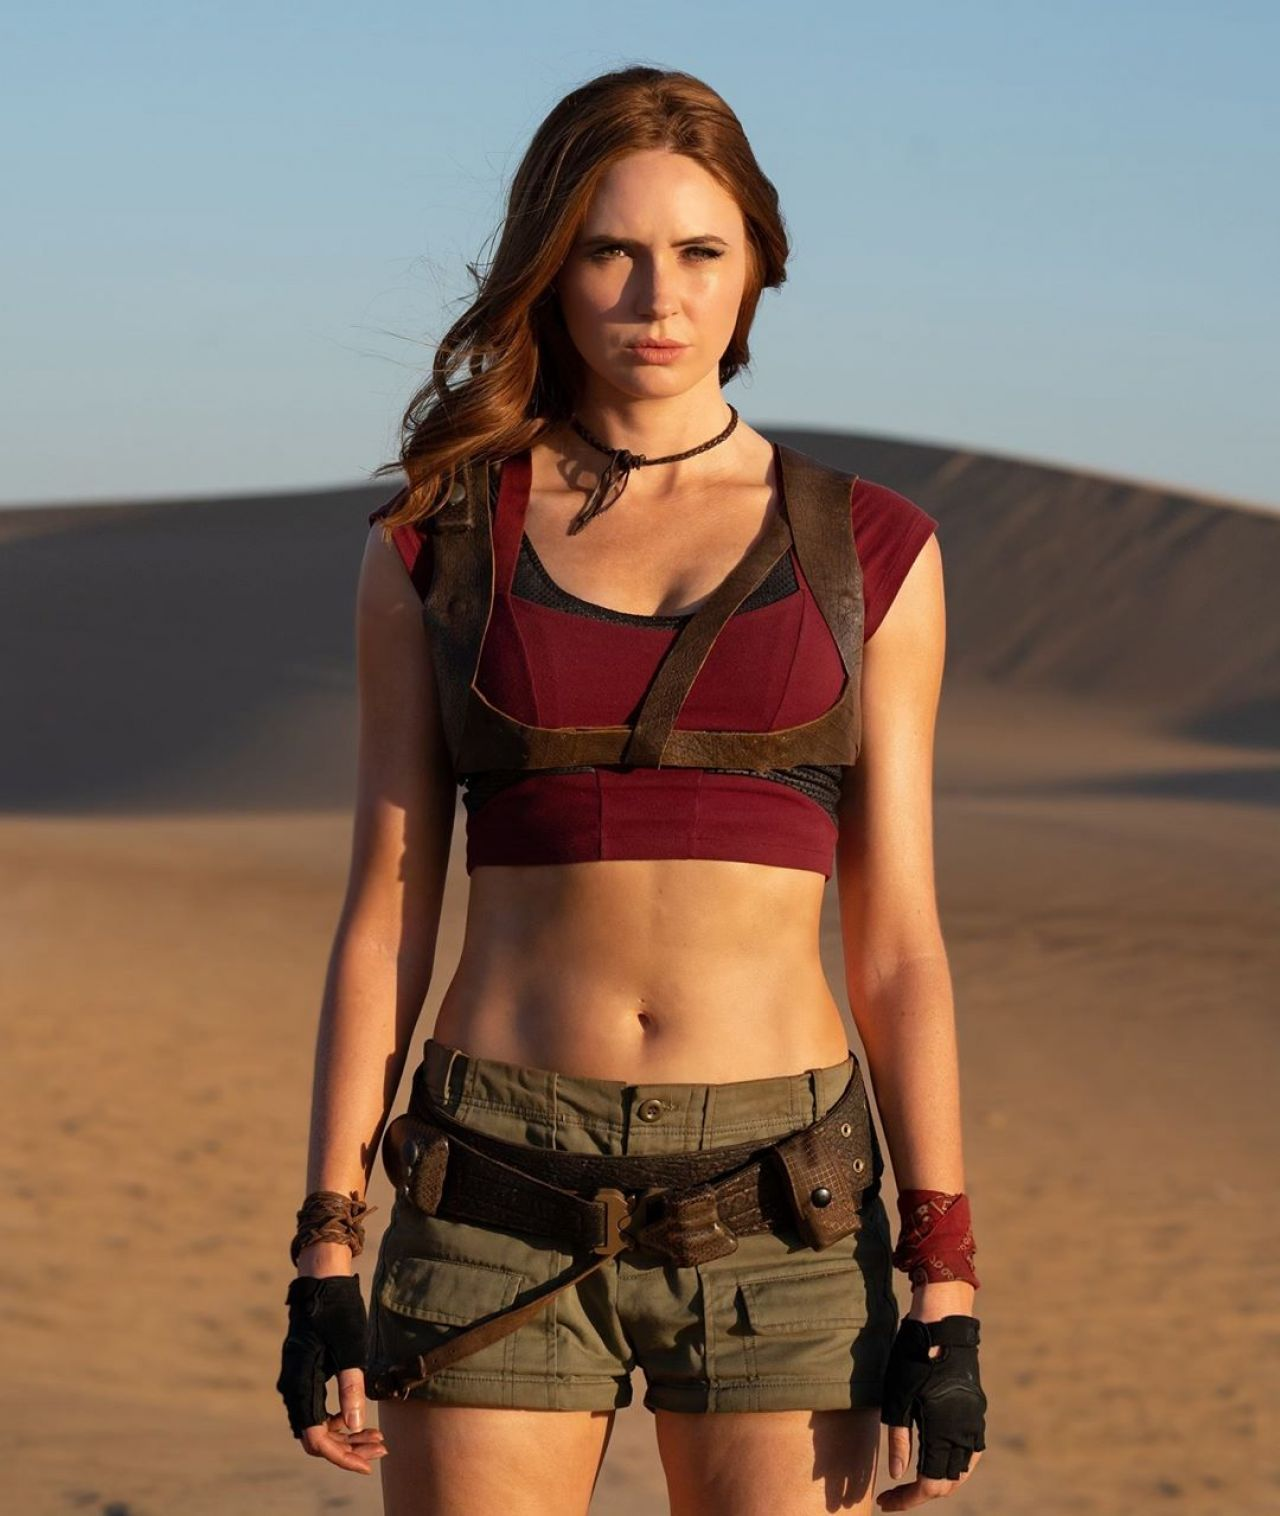 Jumanji The Next Level - Karen Gillan wearing mid rif outfit